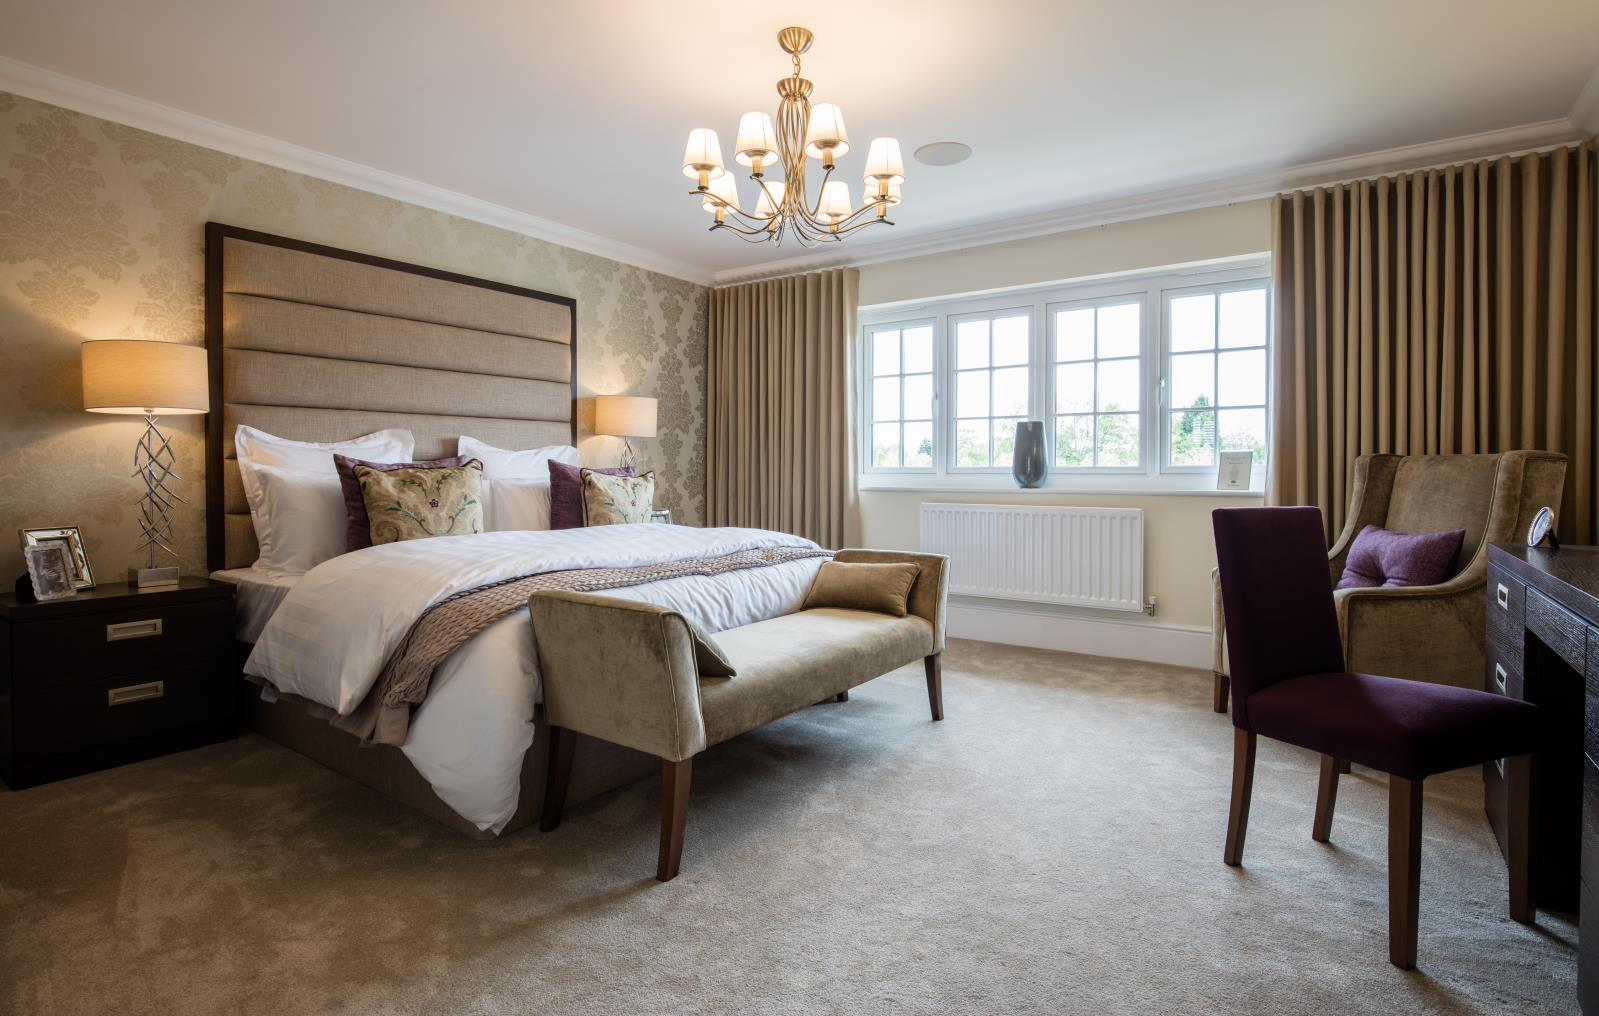 Your Master Bedroom Is Your Private Space A Place To Unwind And Relax